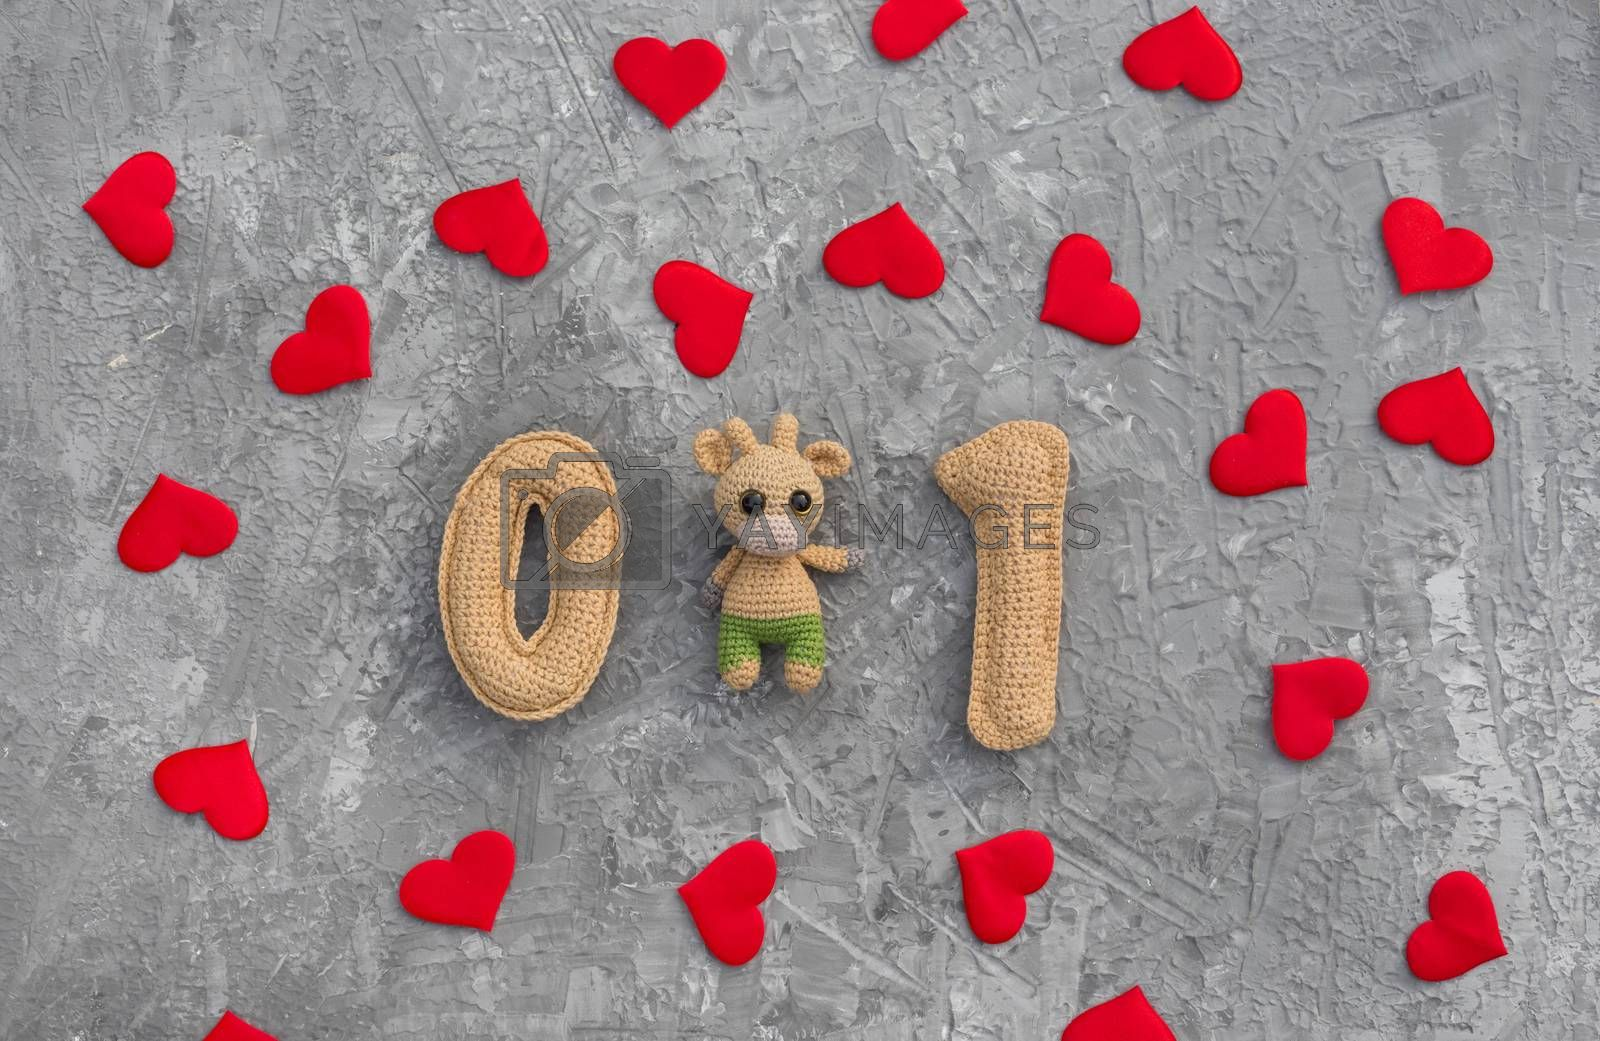 Romantic christmas background with knitted number 21 and red hearts, pandemic new year